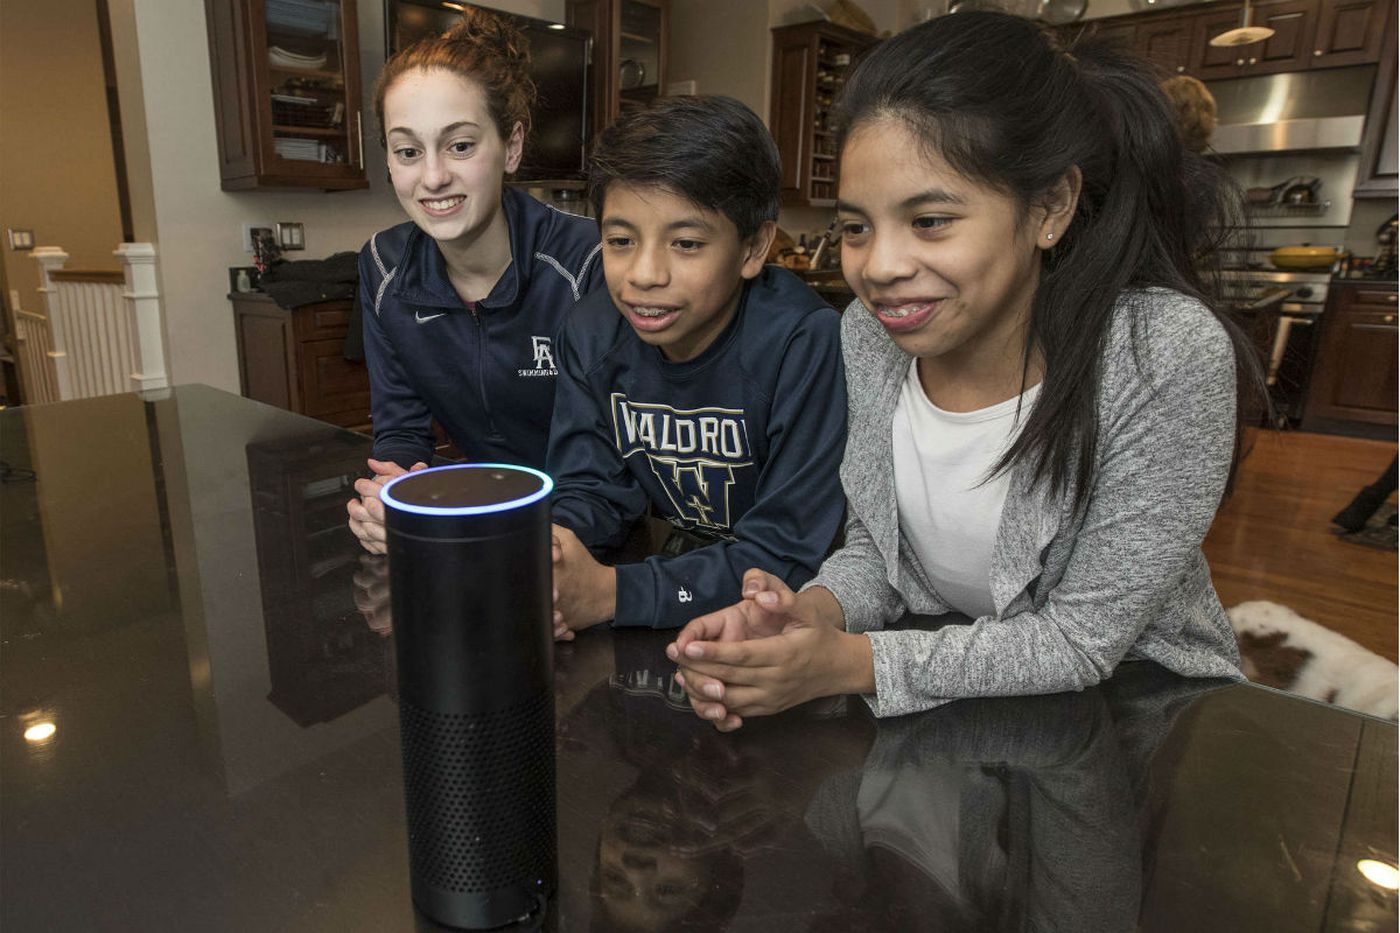 History lessons, grocery lists, and sports scores: What intelligent personal assistants offer families